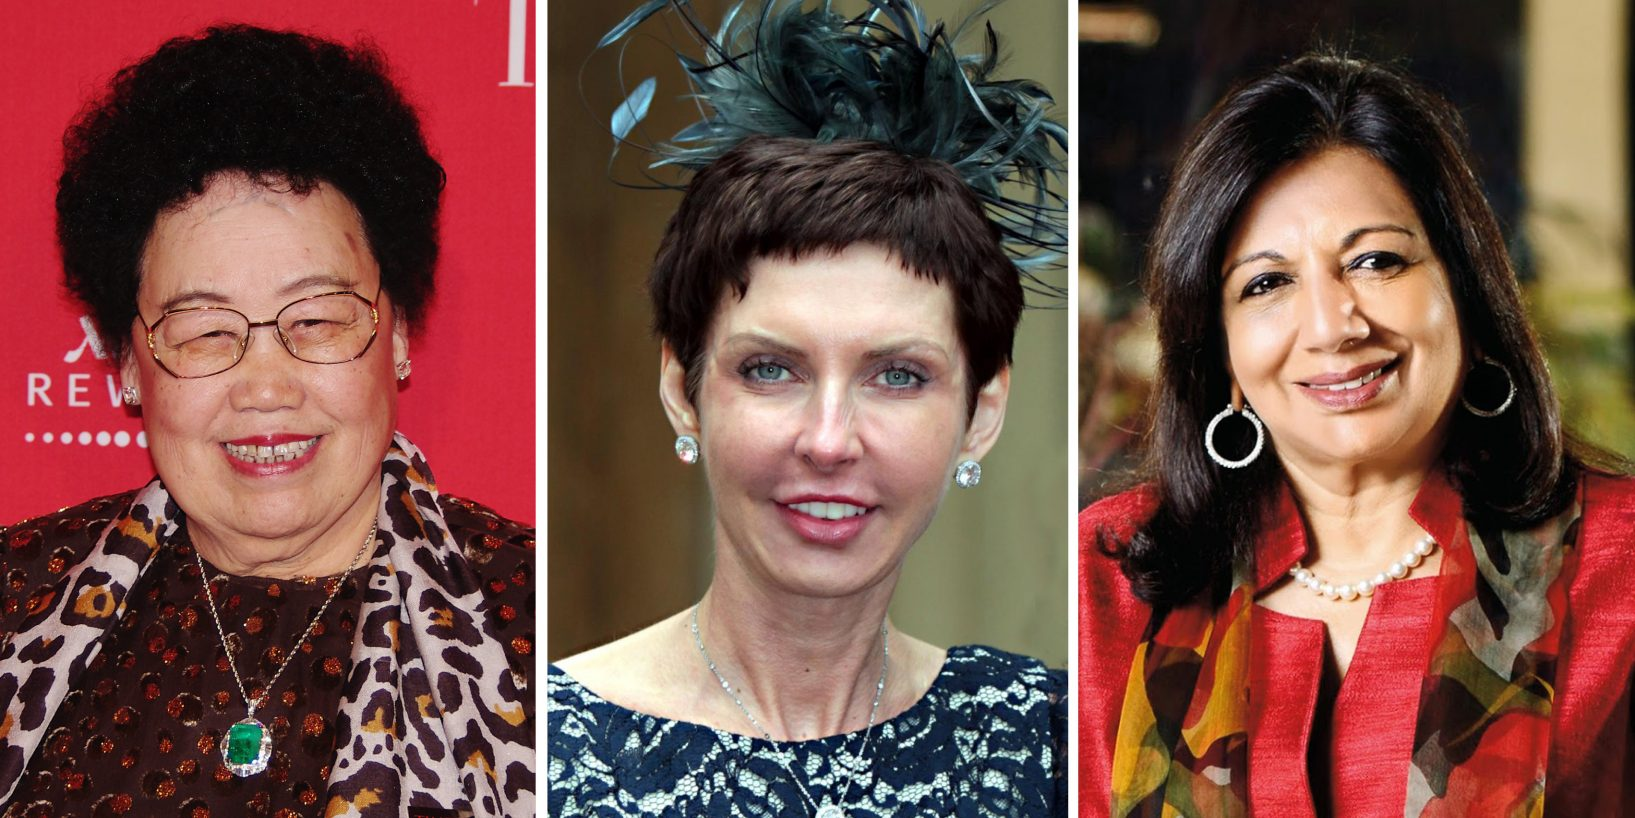 Top 10 Self-Made Women Billionaires